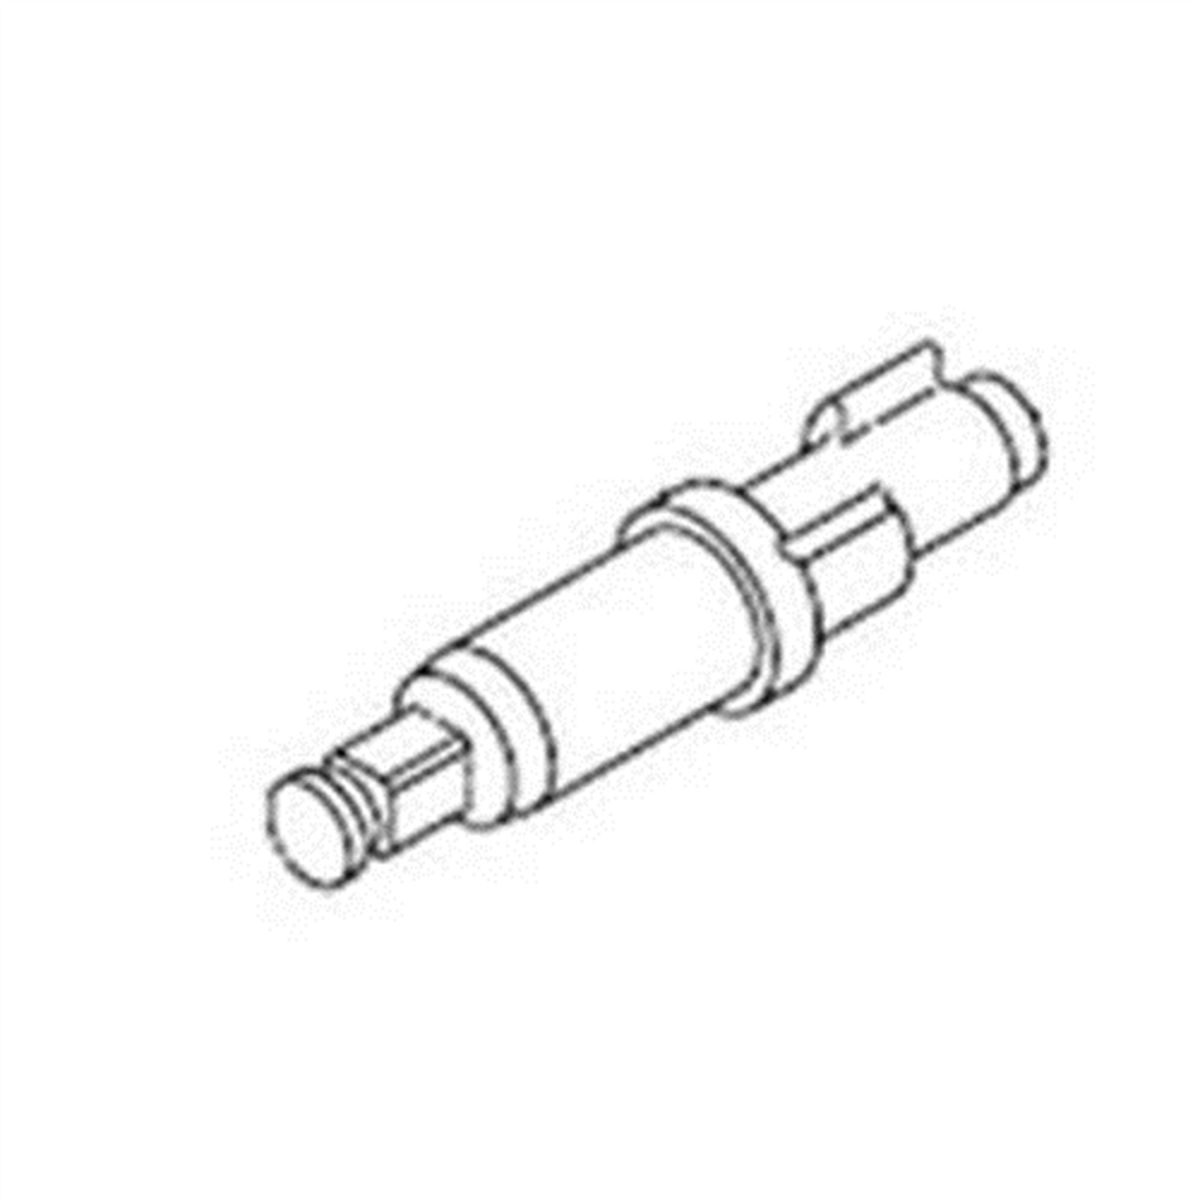 Ingersoll-Rand 2131-A626 1/2 Drive Anvil Assembly for